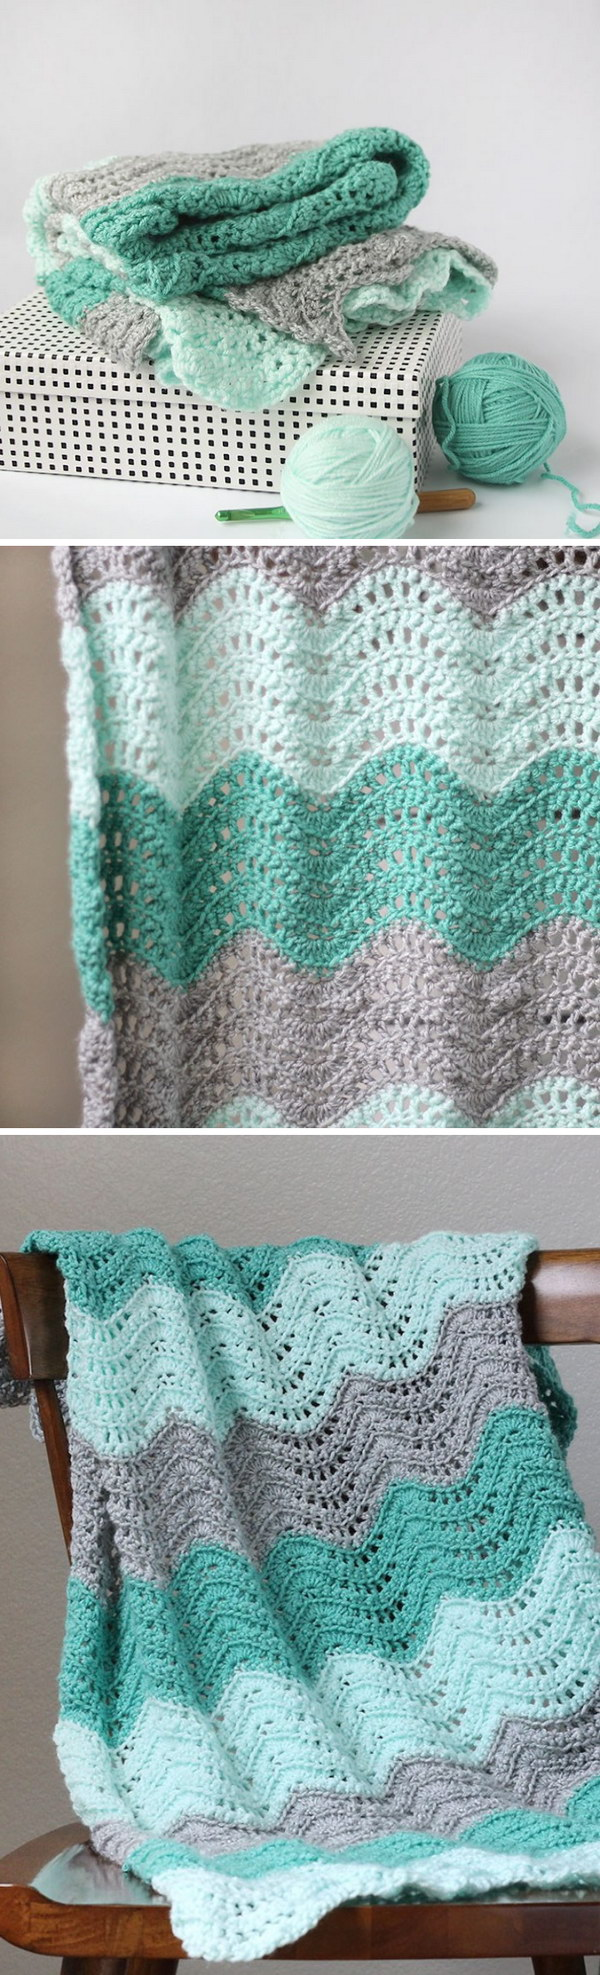 27 Beautiful Crochet Blankets with Free Patterns